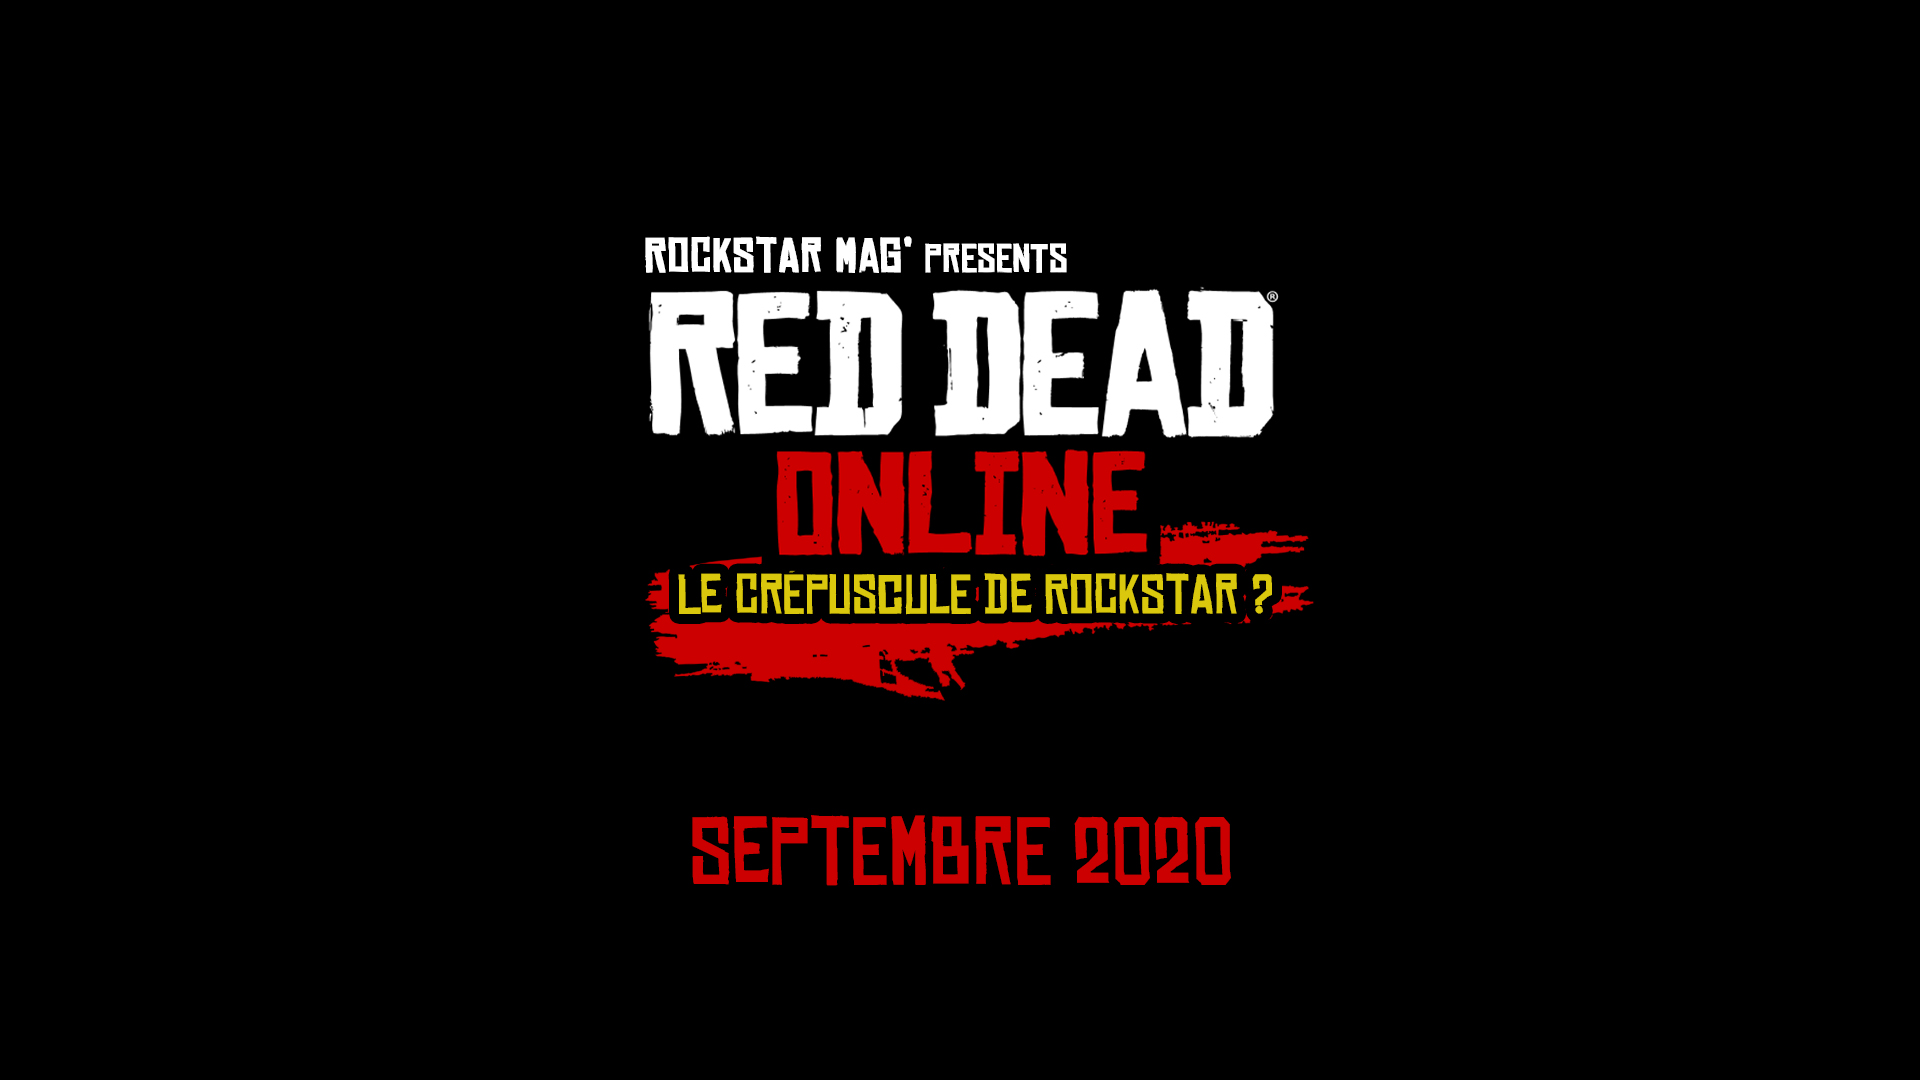 Documentaire Red Dead Online Crépuscule de Rockstar